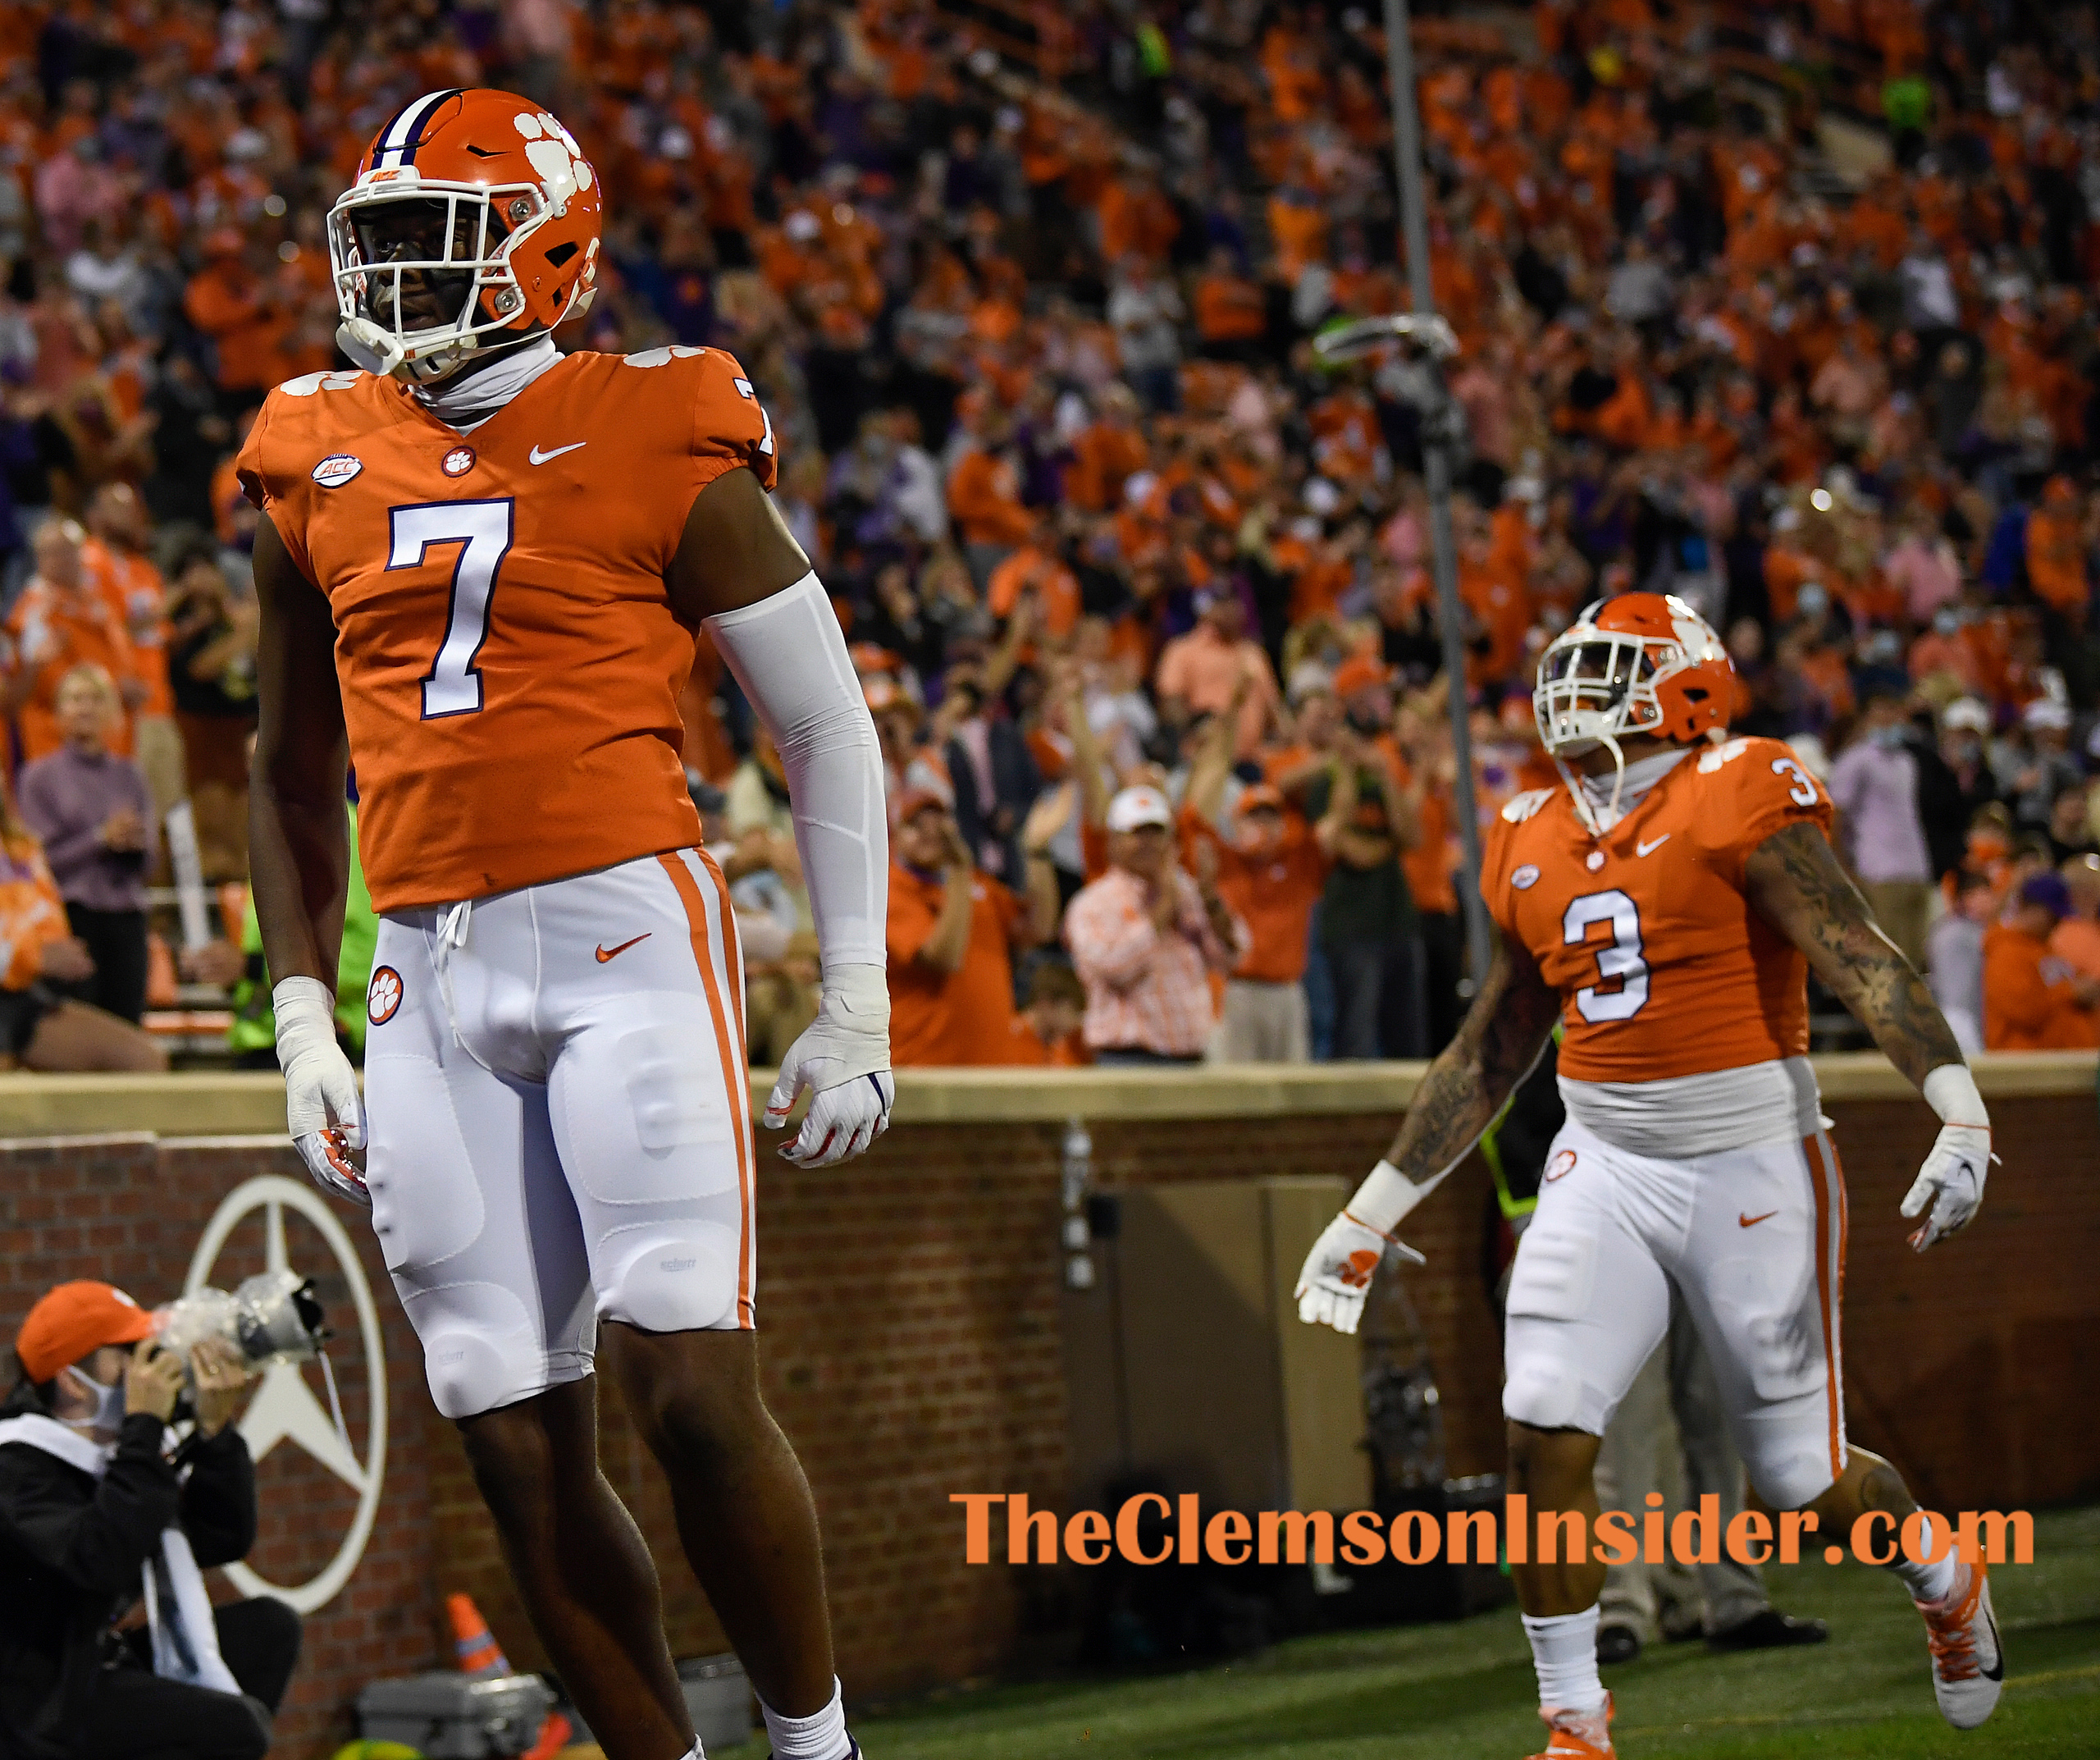 Clemson defensive end Justin Mascoll (7) during pregame of Clemson's game against the University of Miami at Clemson's Memorial Stadium Saturday, October 10, 2020. Bart Boatwright/The Clemson Insider